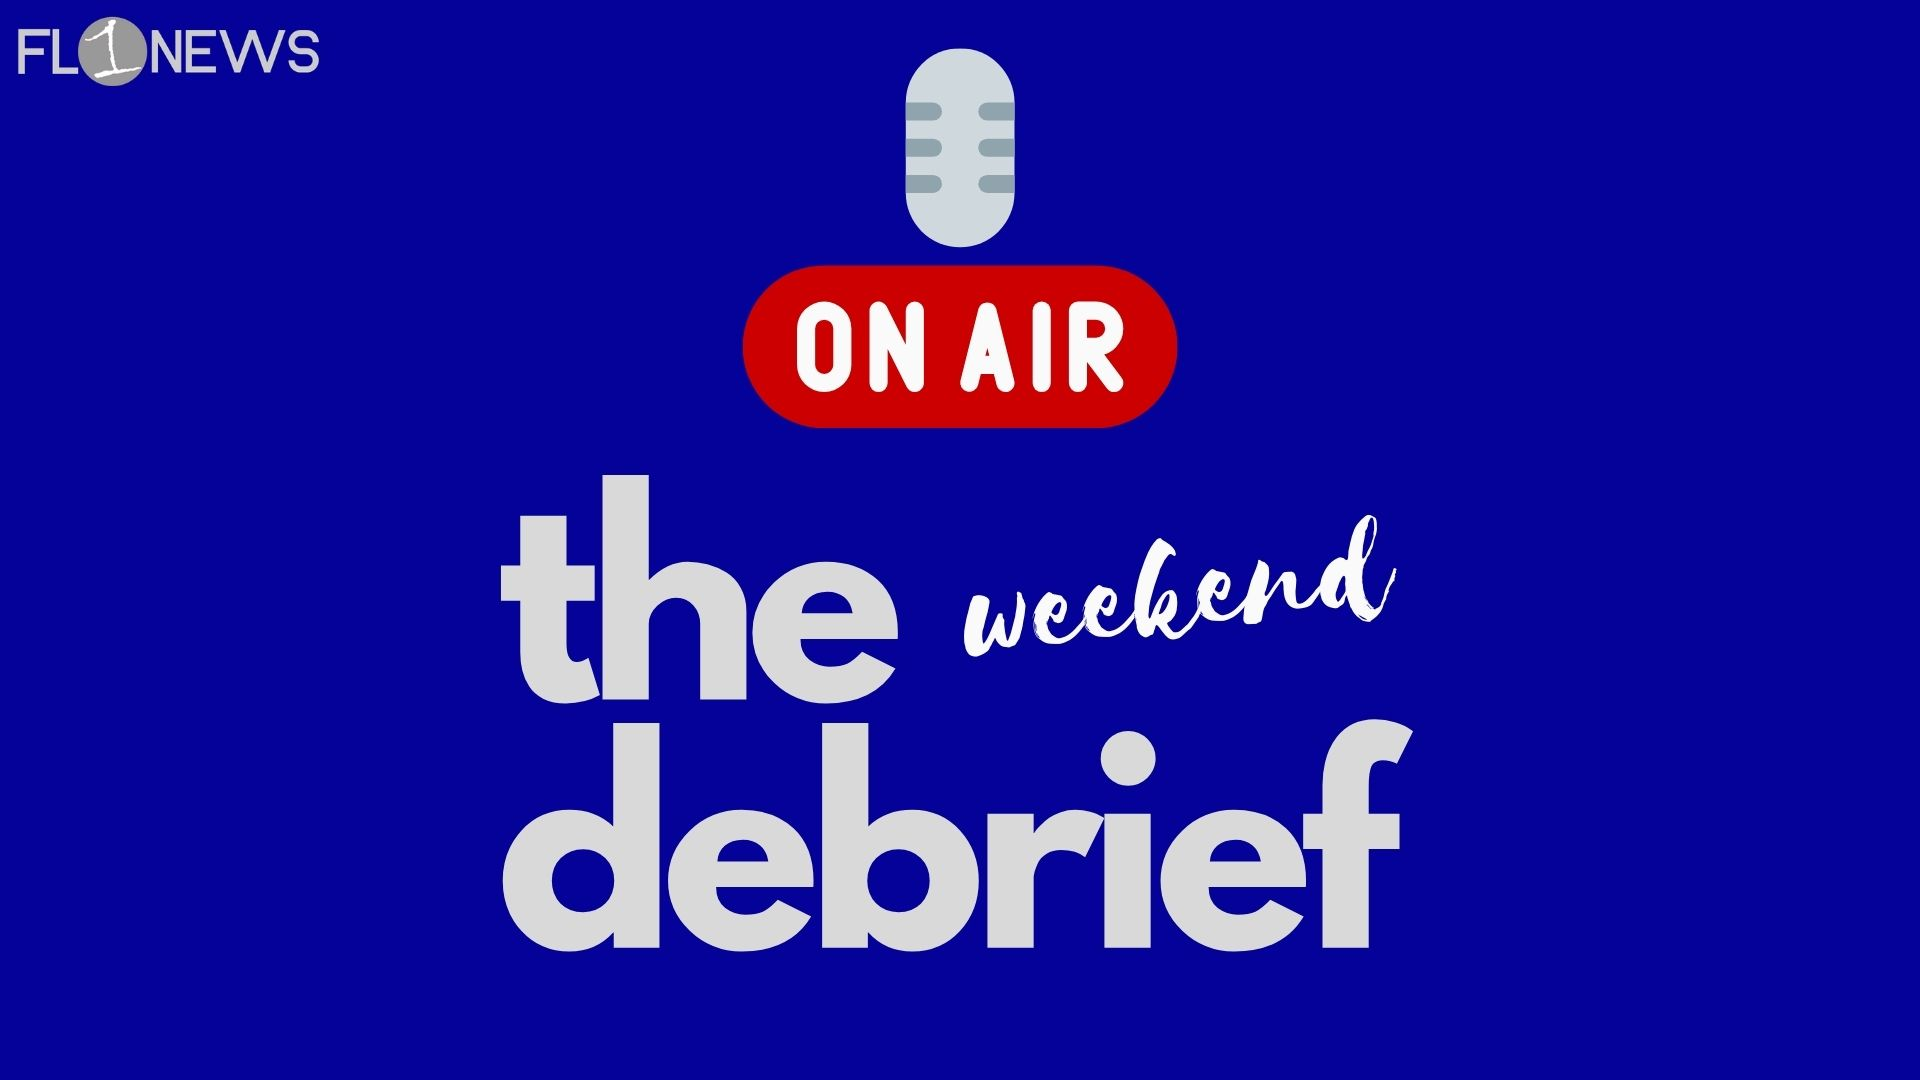 WEEKEND DEBRIEF: COVID fines, cluster zone effectiveness, local government struggles (podcast)